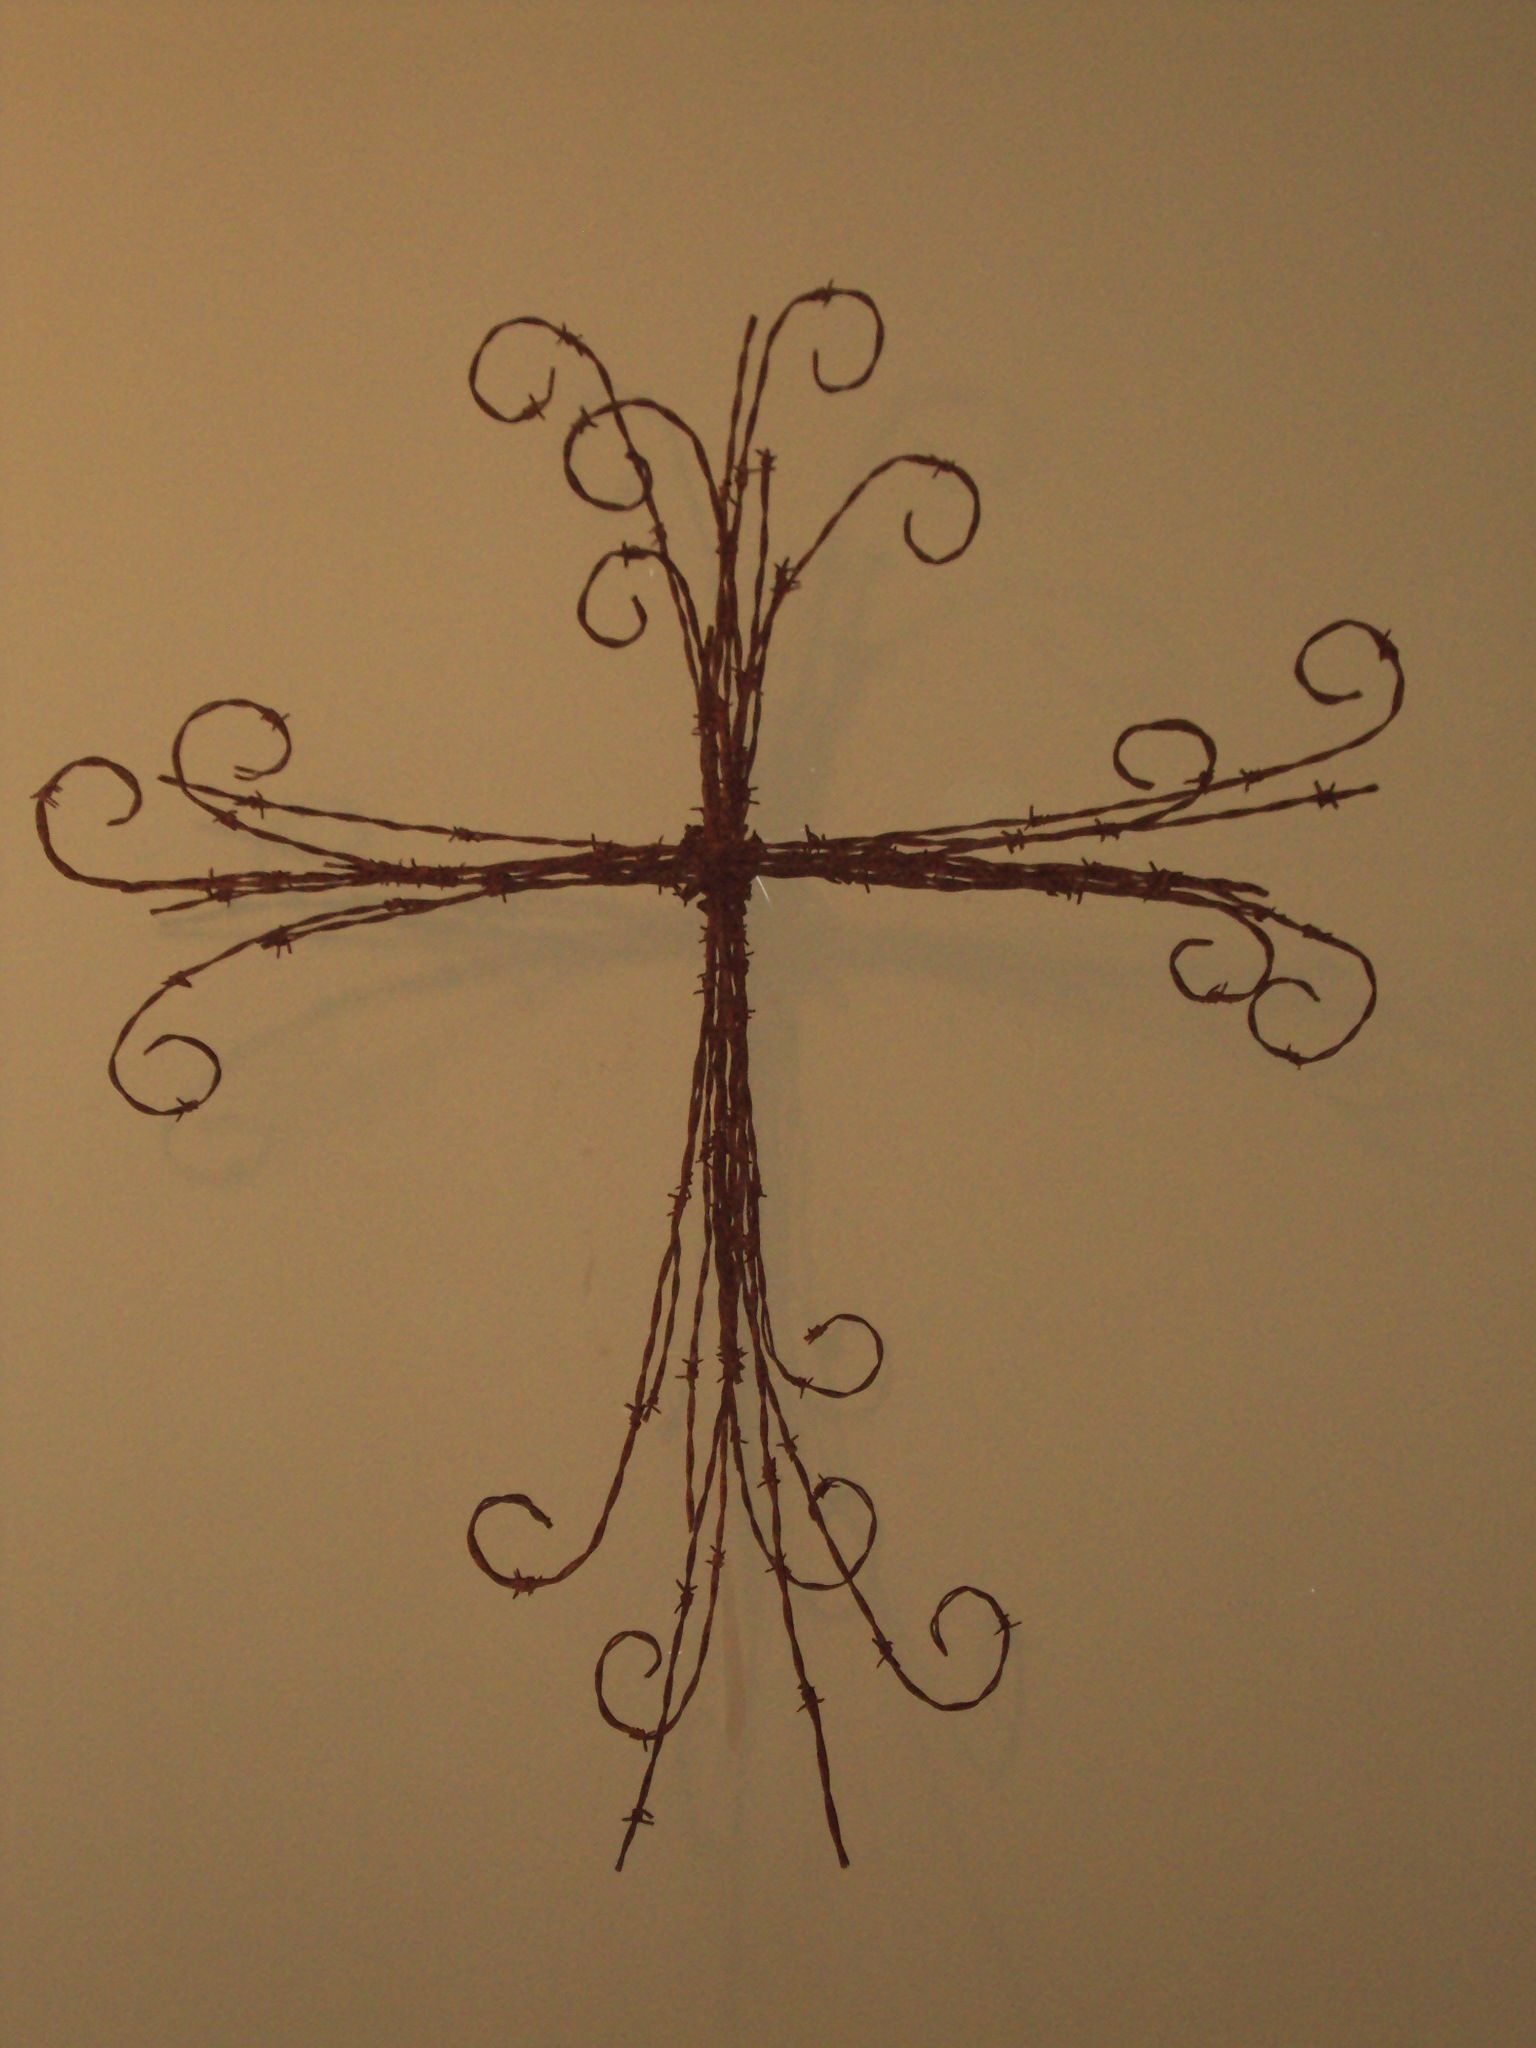 Wire Cross Craft Ideas Center Velleman Mk104 Electronic Cricket Mini Kit Quasar Electronics Uk Thicker Barb Crosses Pinterest Rh Com Barbed Art And Crafts To Do With